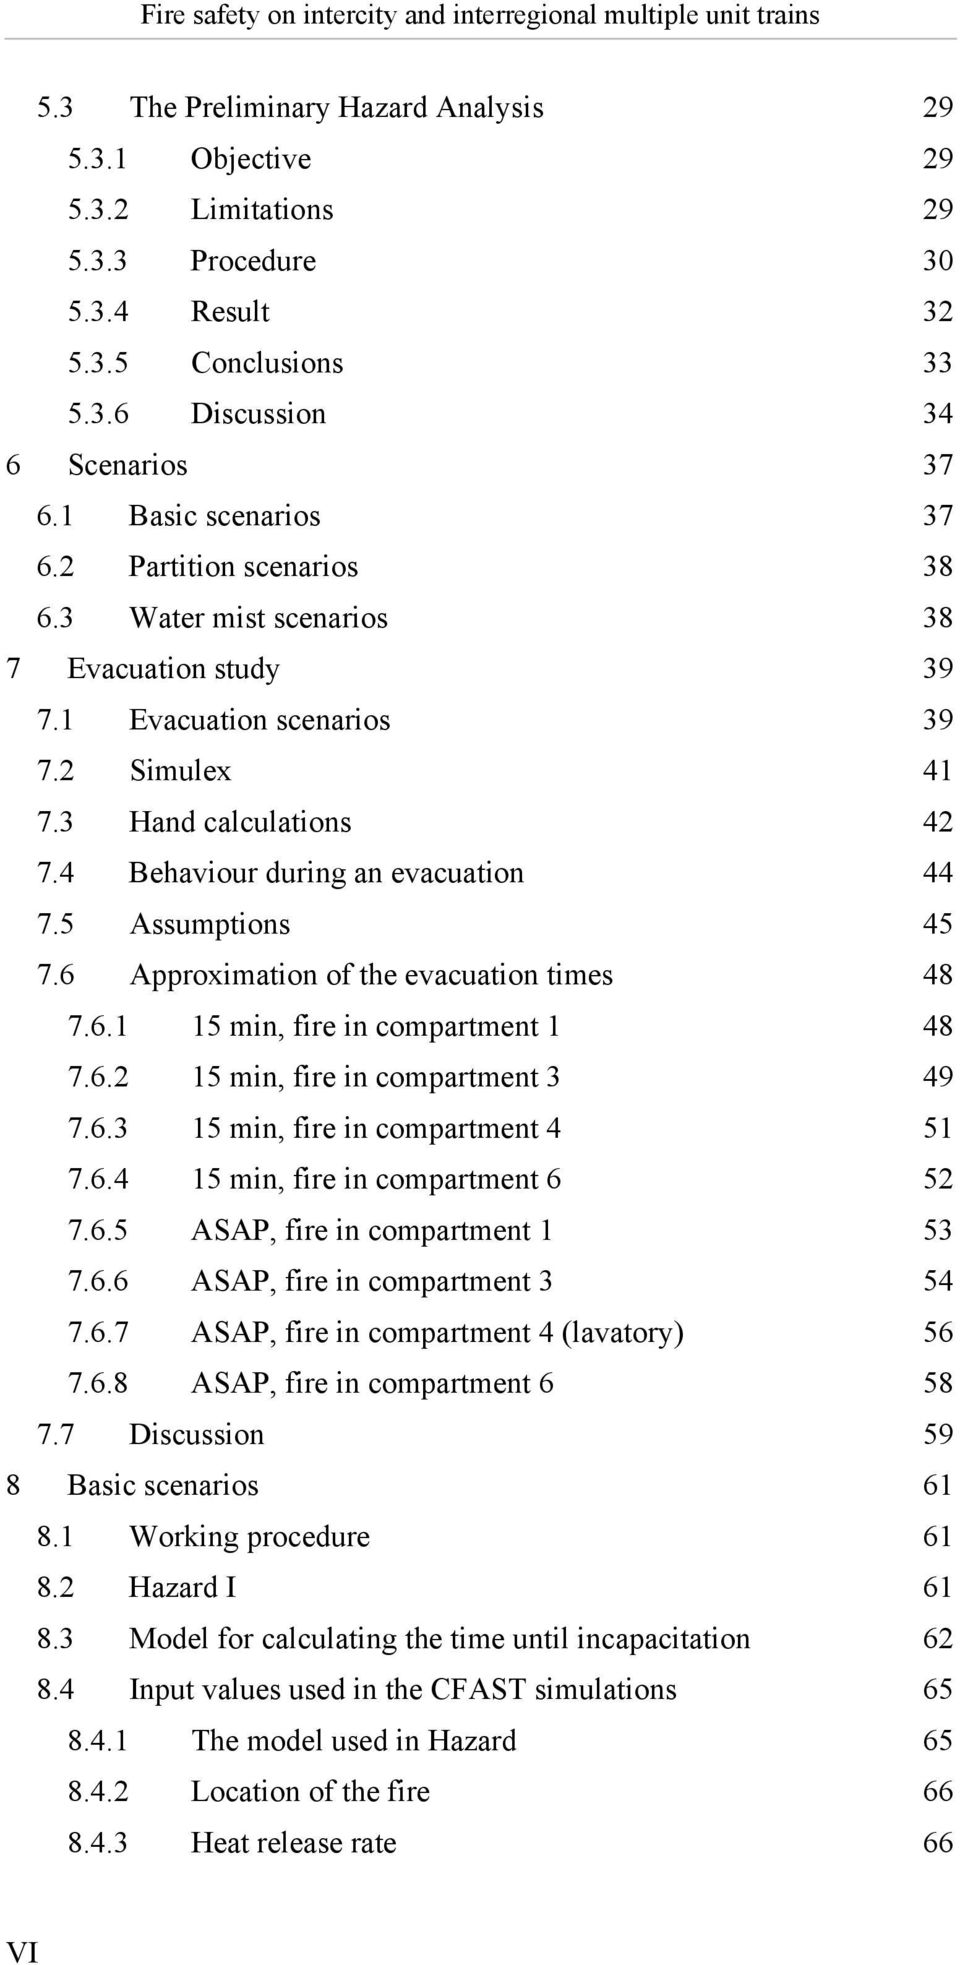 5 Assumptions 45 7.6 Approximation of the evacuation times 48 7.6.1 15 min, fire in compartment 1 48 7.6.2 15 min, fire in compartment 3 49 7.6.3 15 min, fire in compartment 4 51 7.6.4 15 min, fire in compartment 6 52 7.